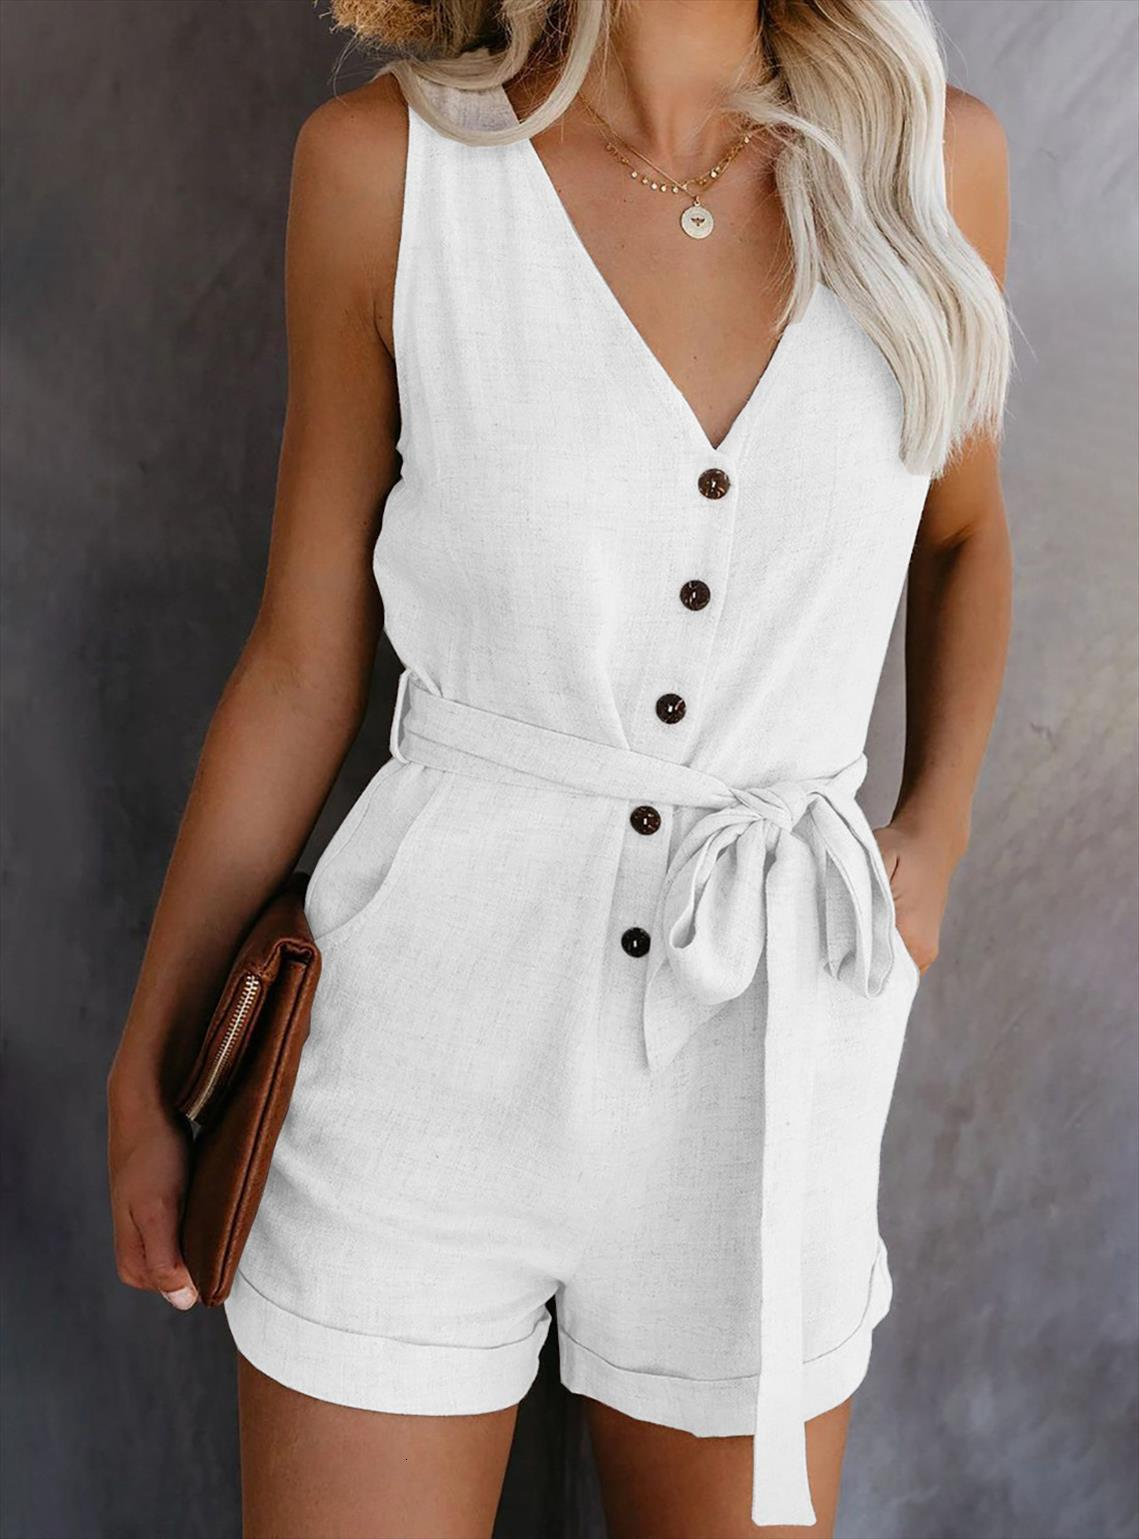 Solid Color Casual Womens Jumpsuit V Neck Bow Five Point Shorts Sleeveless Playsuit Summer Beach Rompers